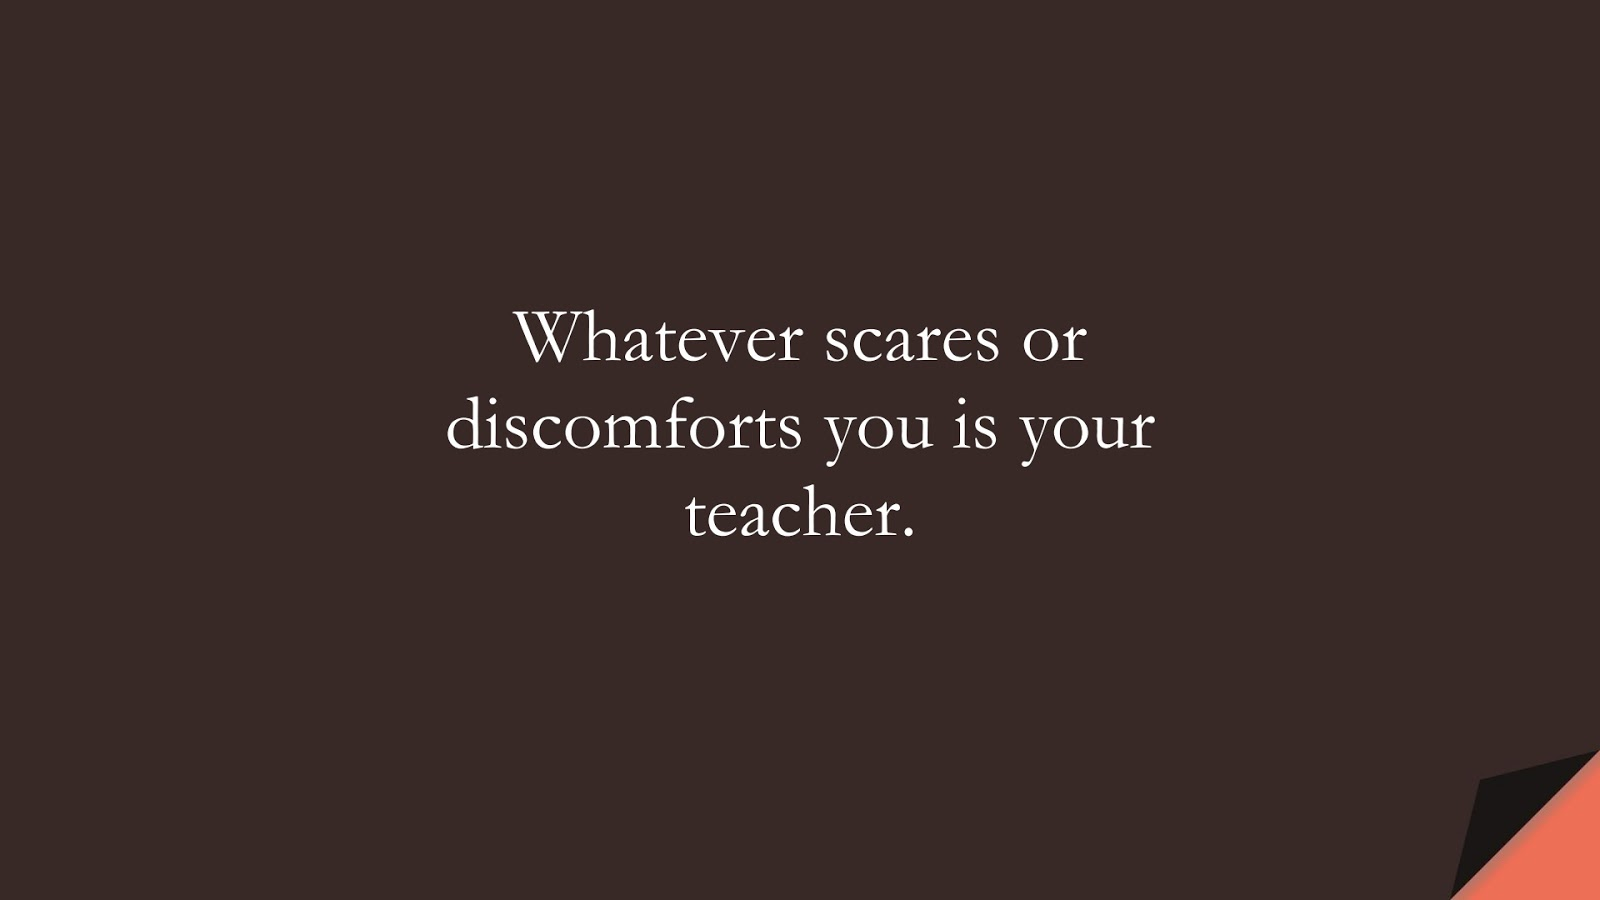 Whatever scares or discomforts you is your teacher.FALSE